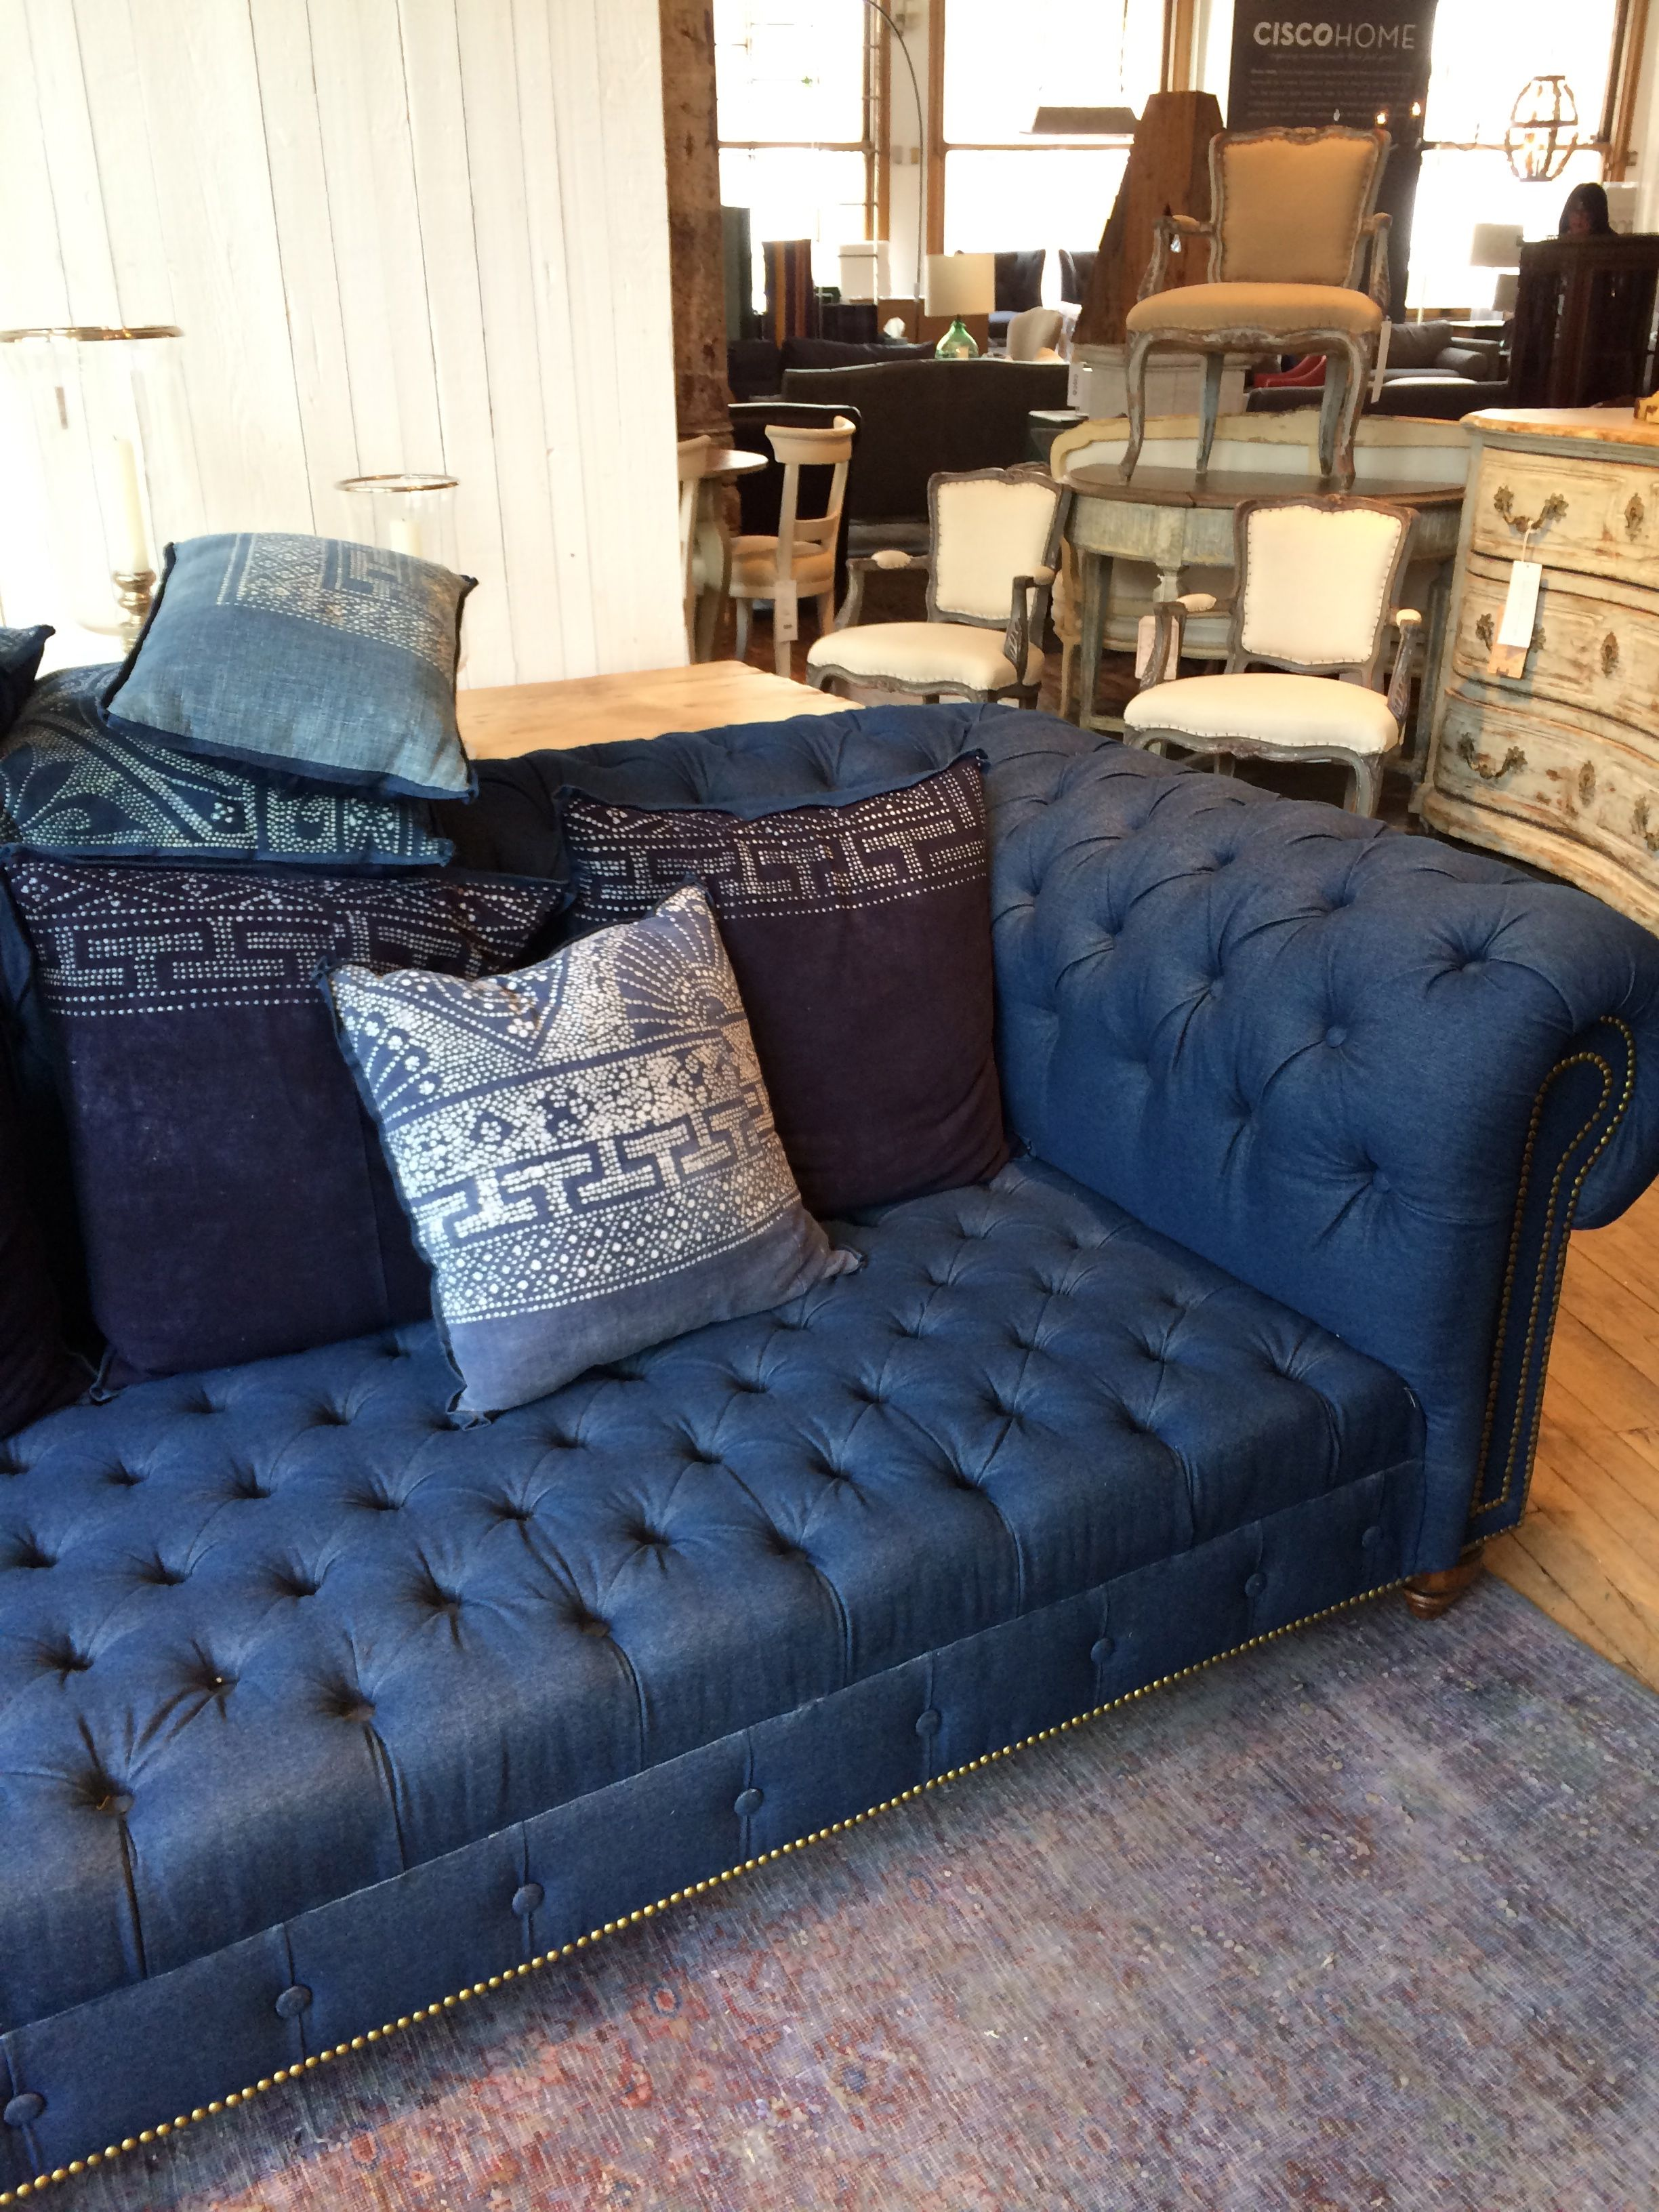 furnititure cover online roselawnlutheran futons amazing bm futon nyc covers denim